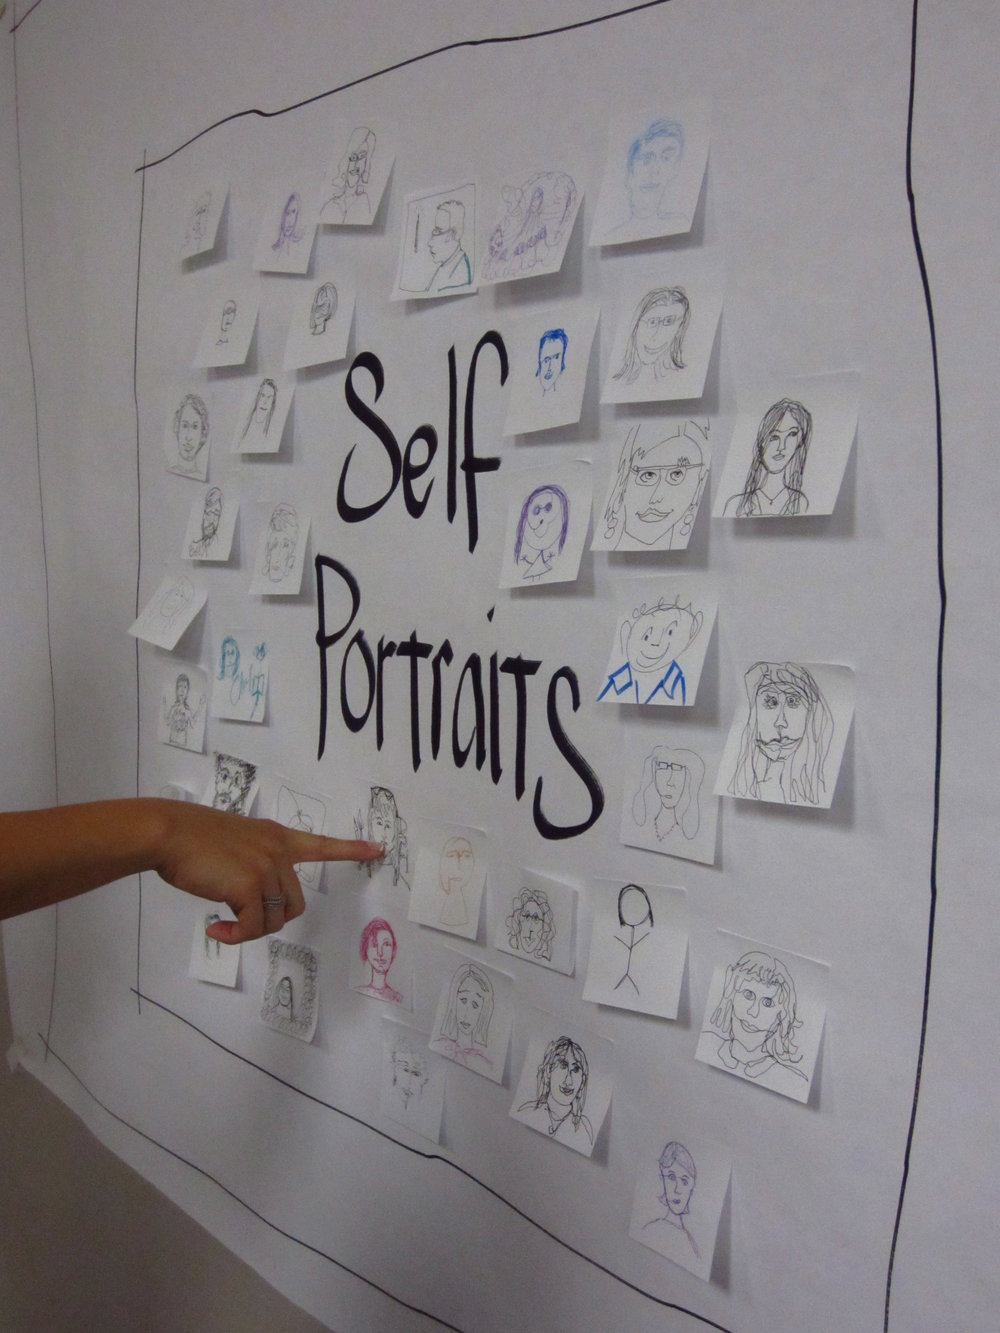 Self-portraits model withholding judgment, supportive feedback, individual perspectives,  and team diversity.